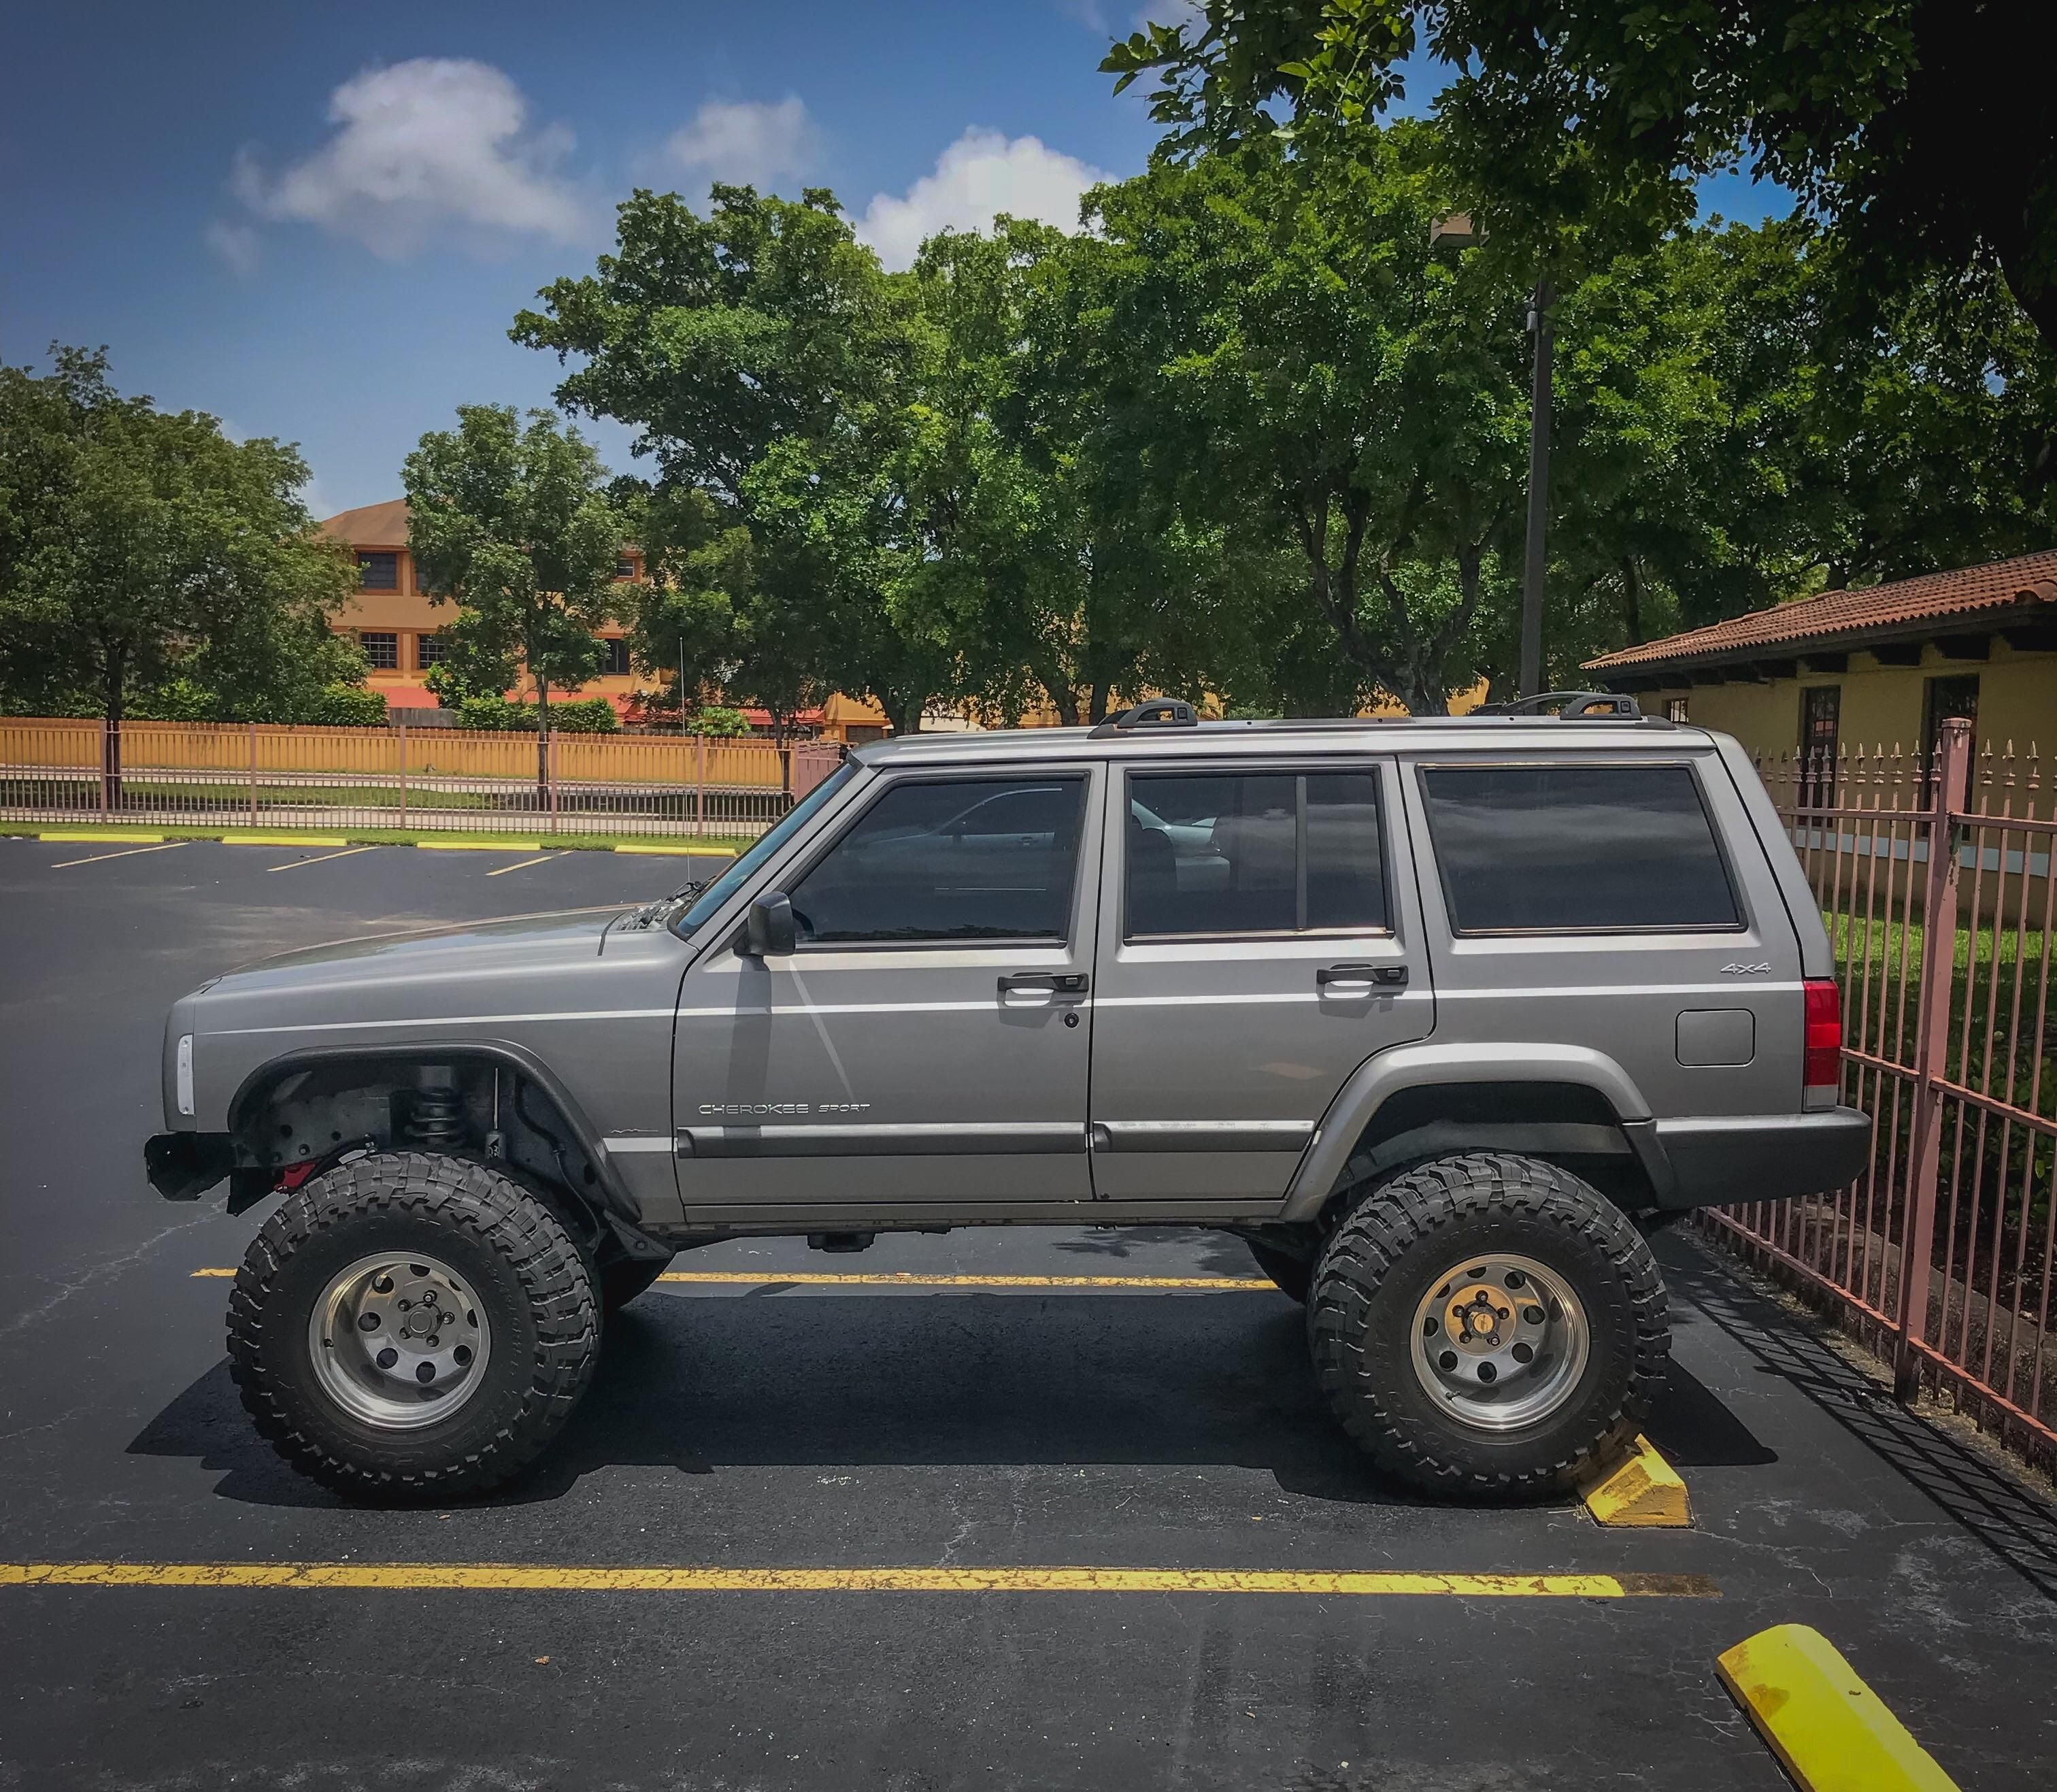 20 Super Clean And Lifted Jeep Cherokee XJs - Deluxe Timber